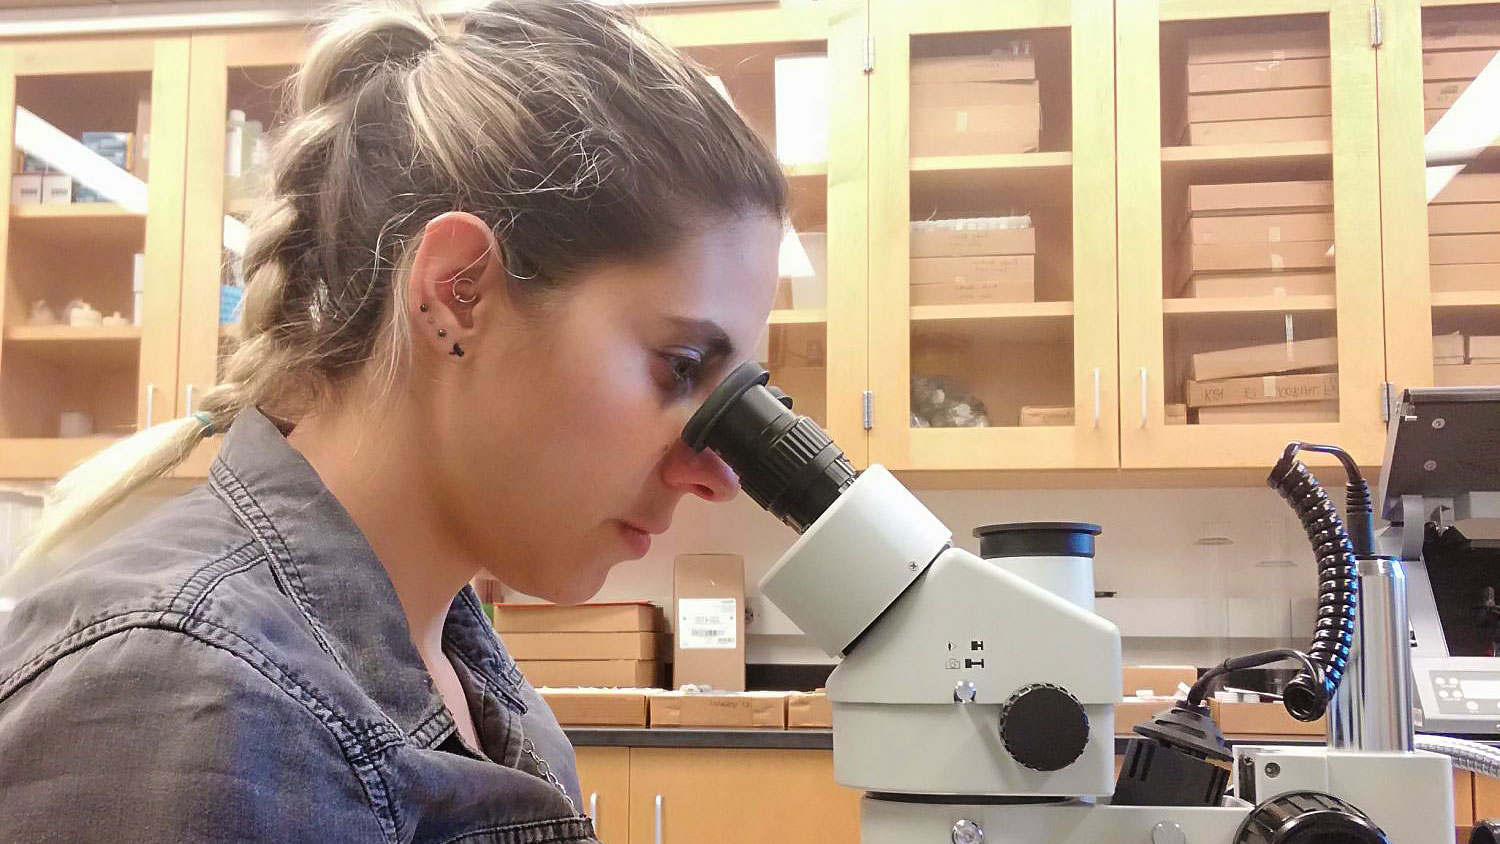 A female student looks through a microscope in a lab